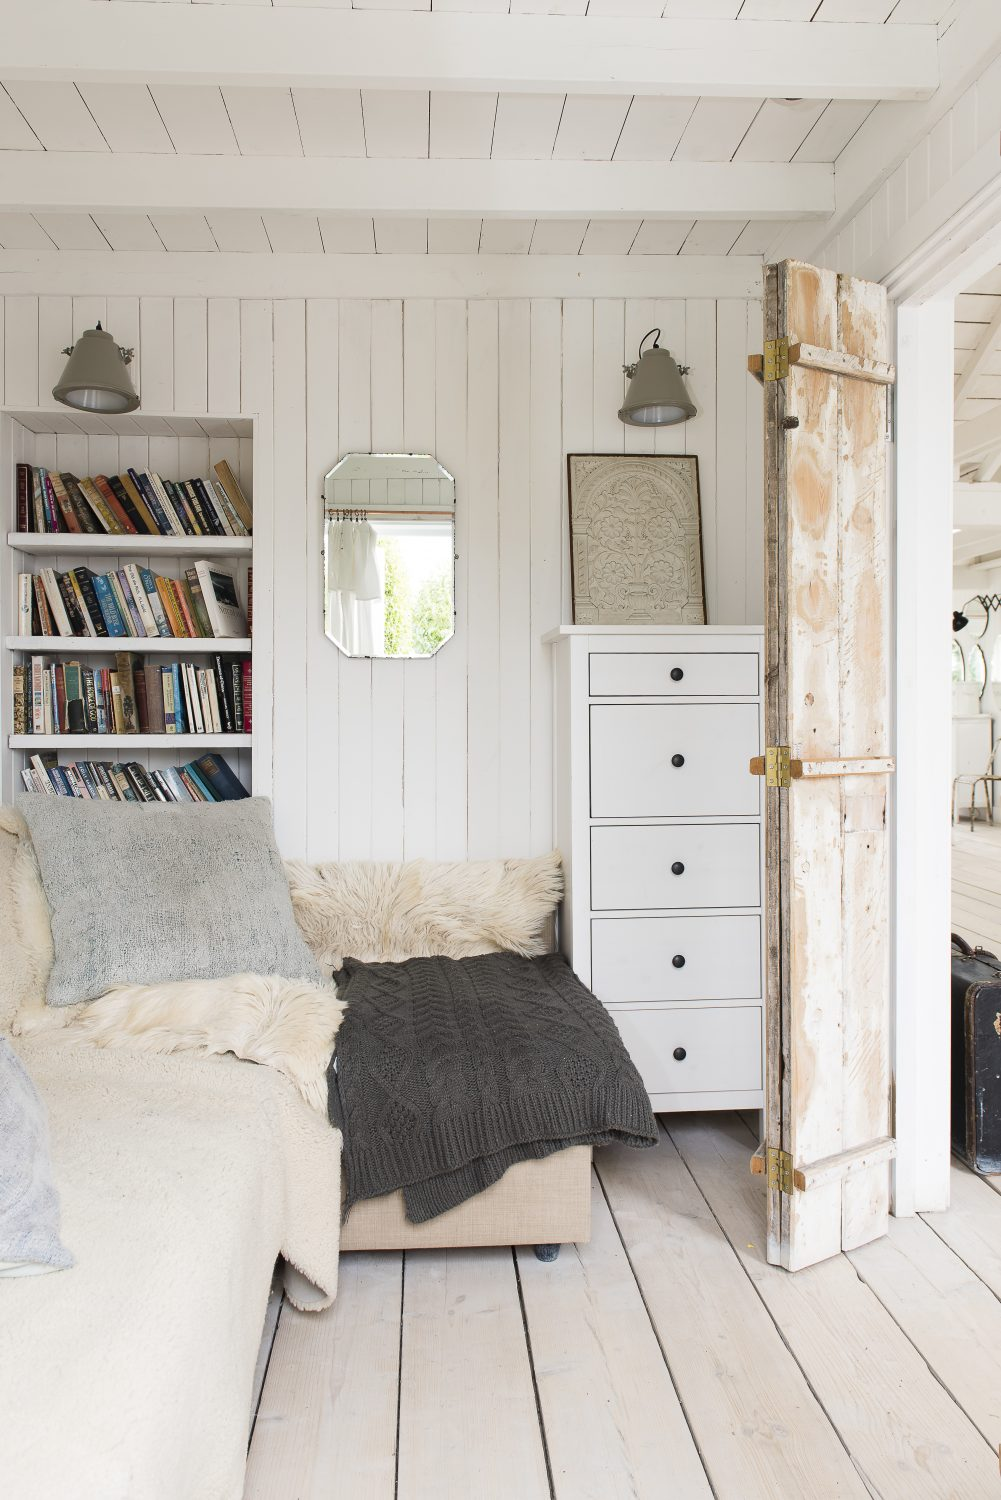 The snug, which can also be used as a bedroom